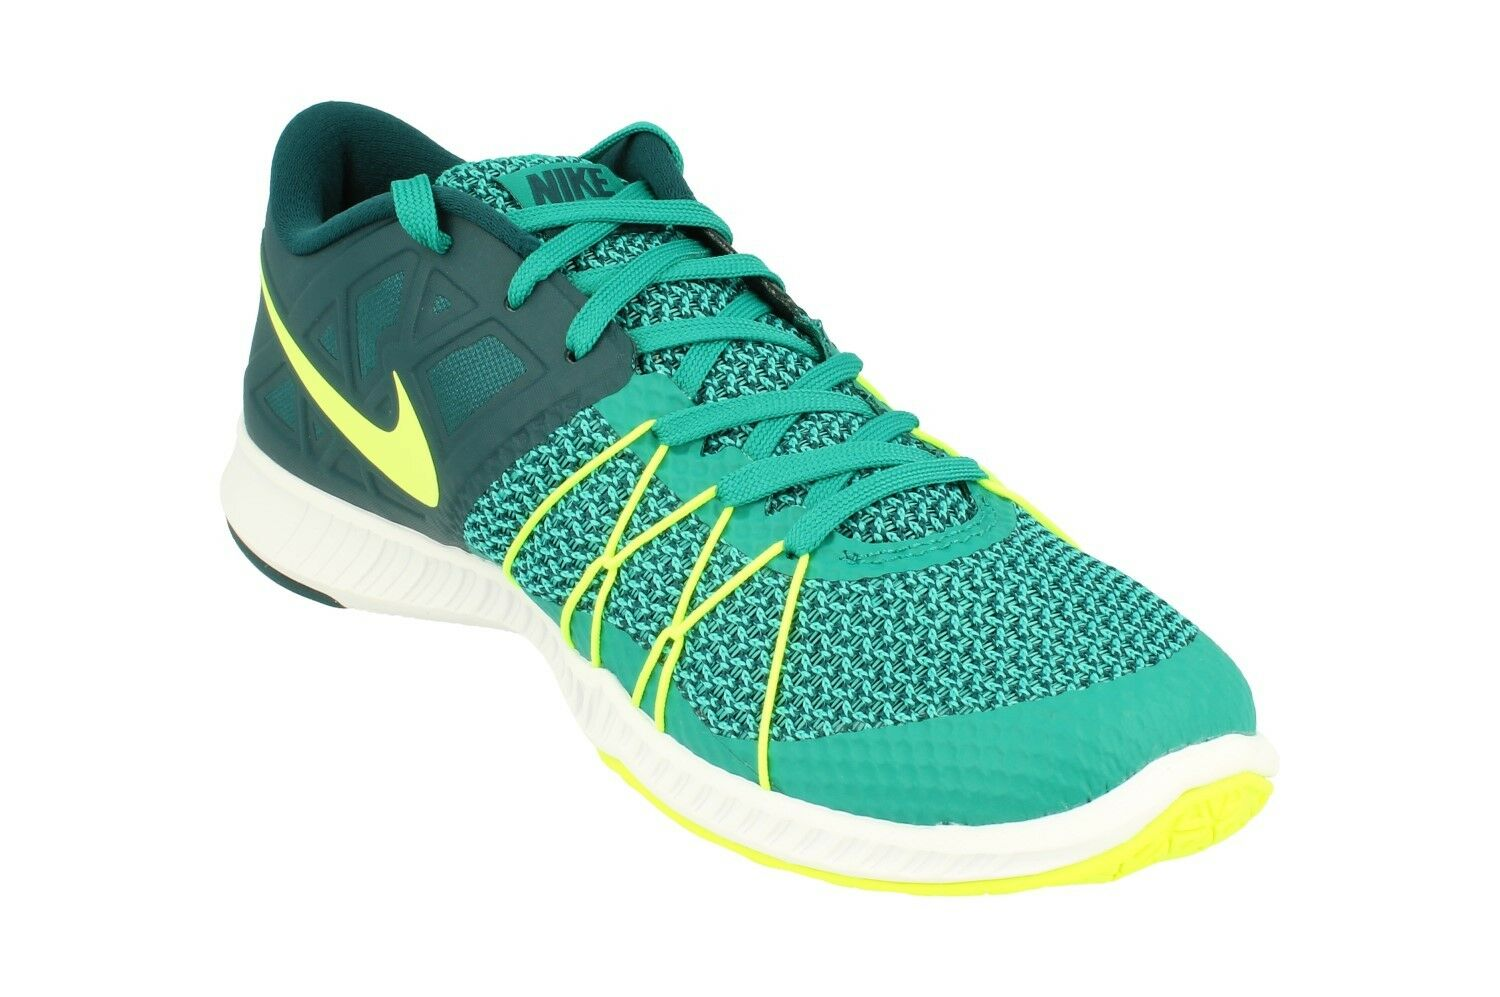 Nike Zoom Train Incredibly Fast Mens Sneakers Running Trainers 844803 Sneakers Mens Shoes 300 5680e3